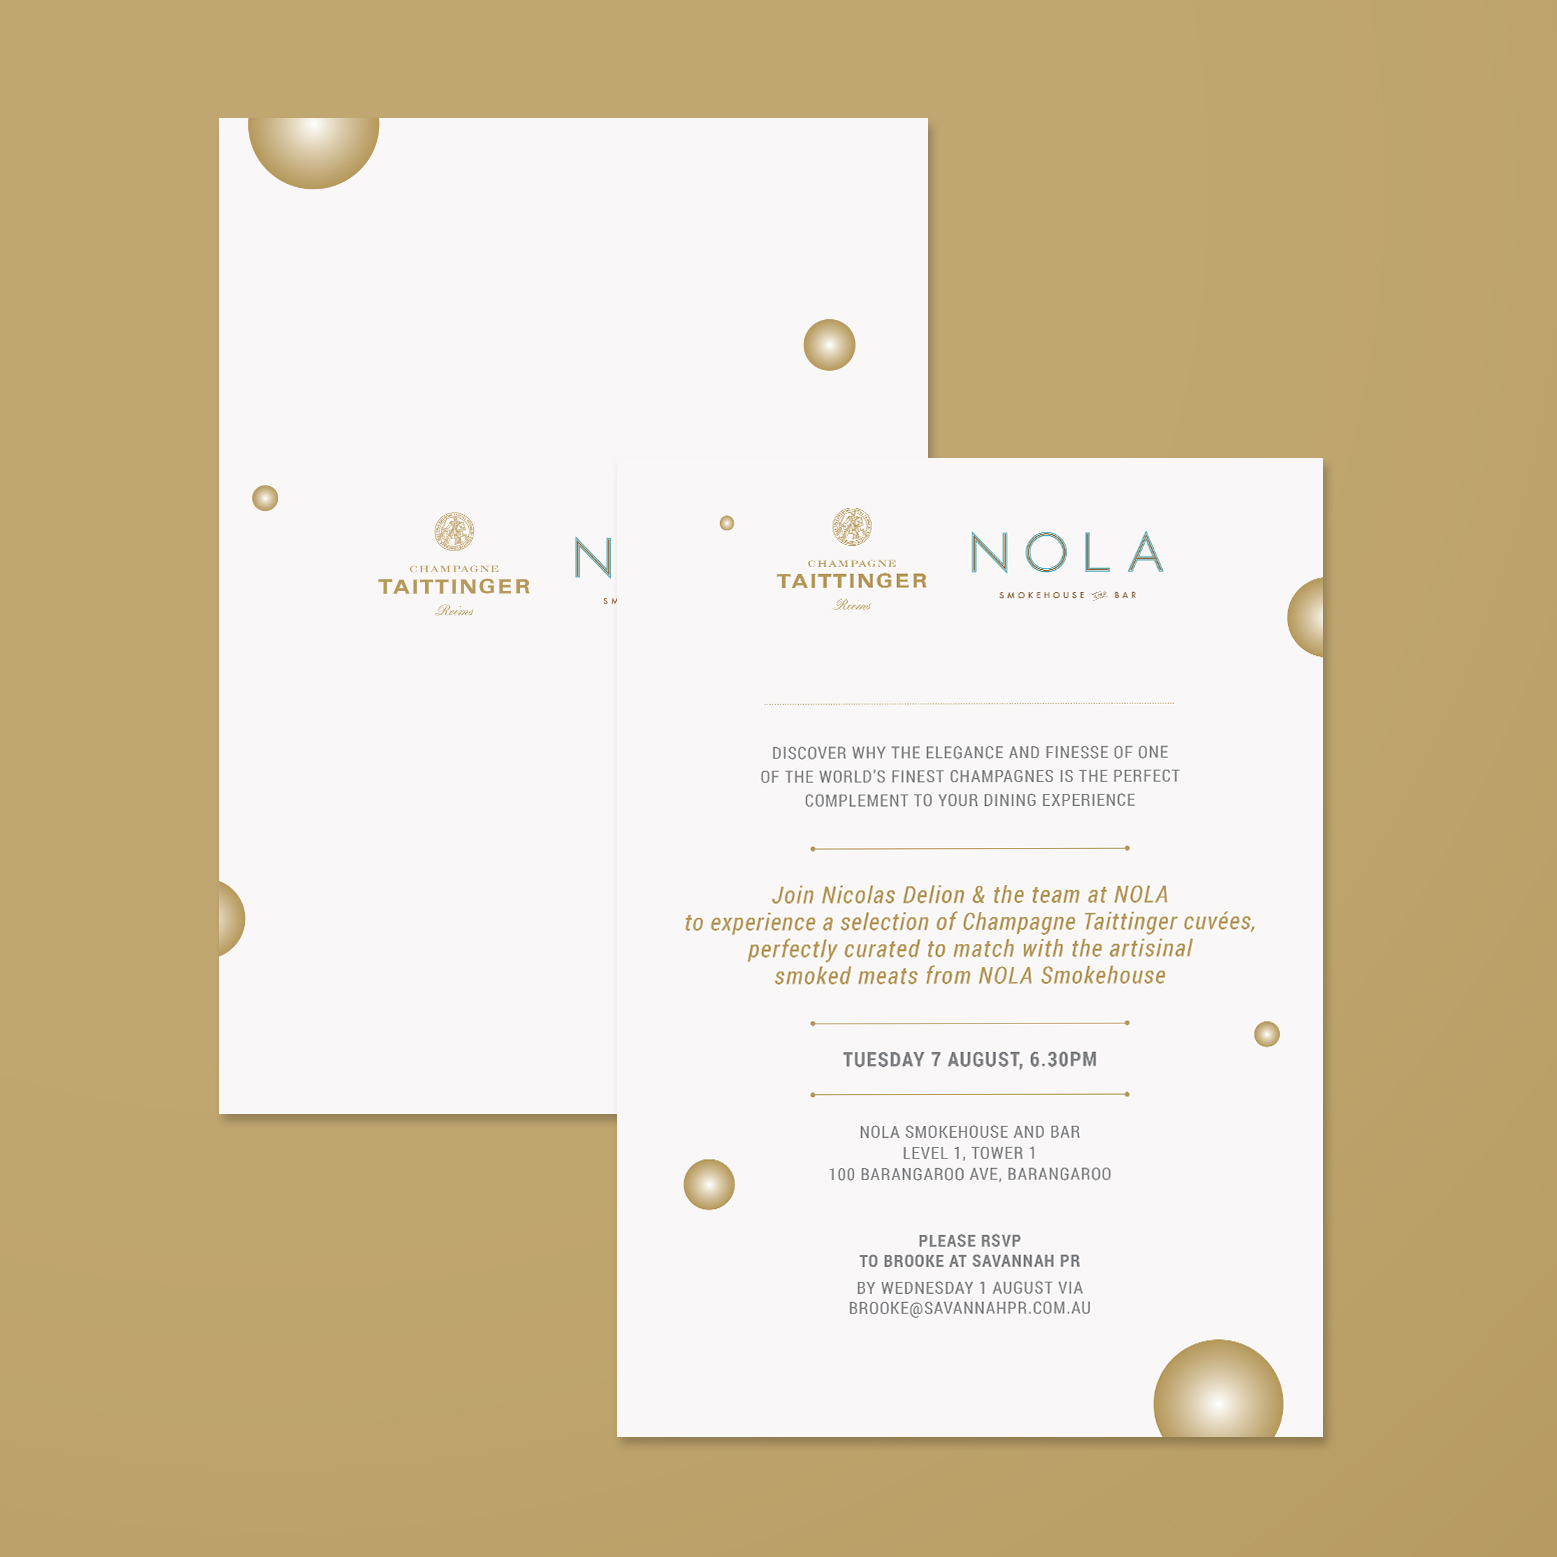 inivitation design for nola smokehouse champagne taittinger food experience